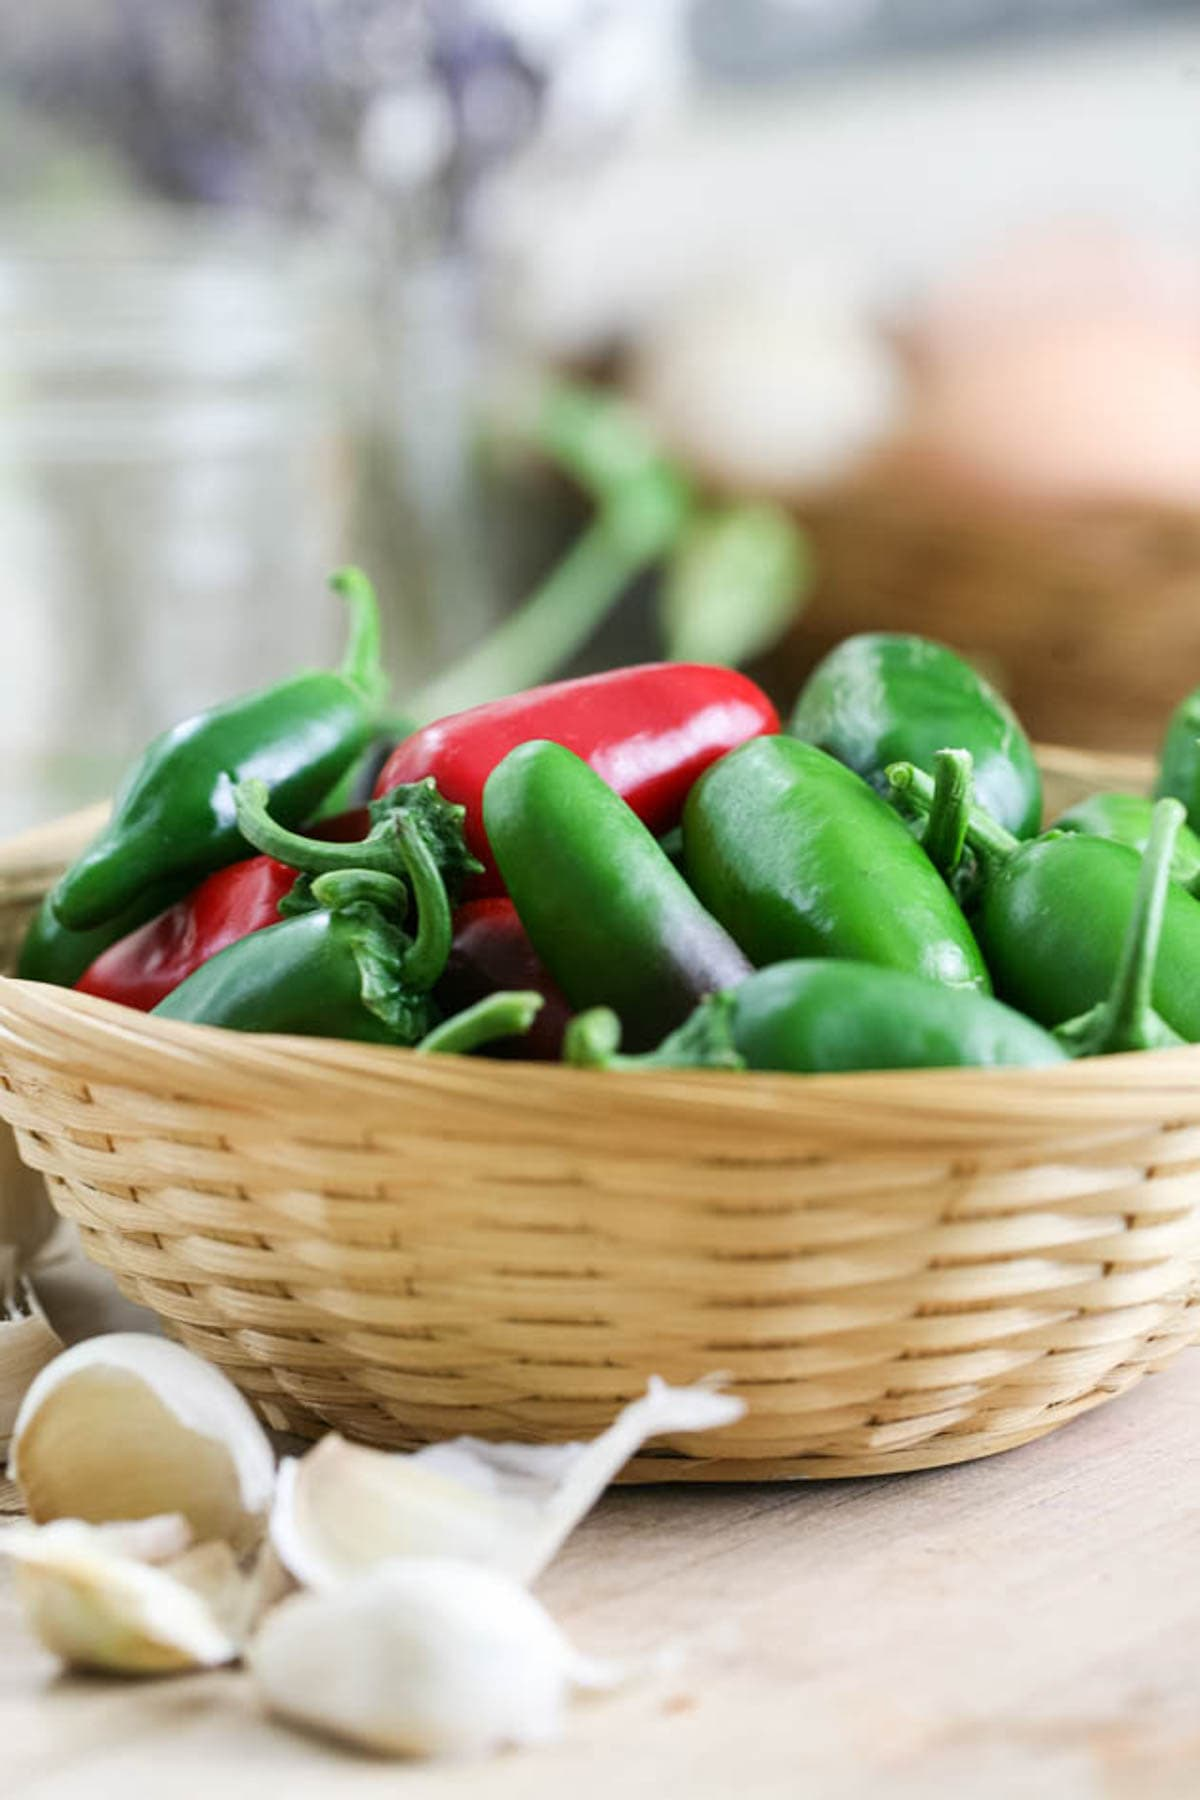 A basket of fresh jalapeno peppers.